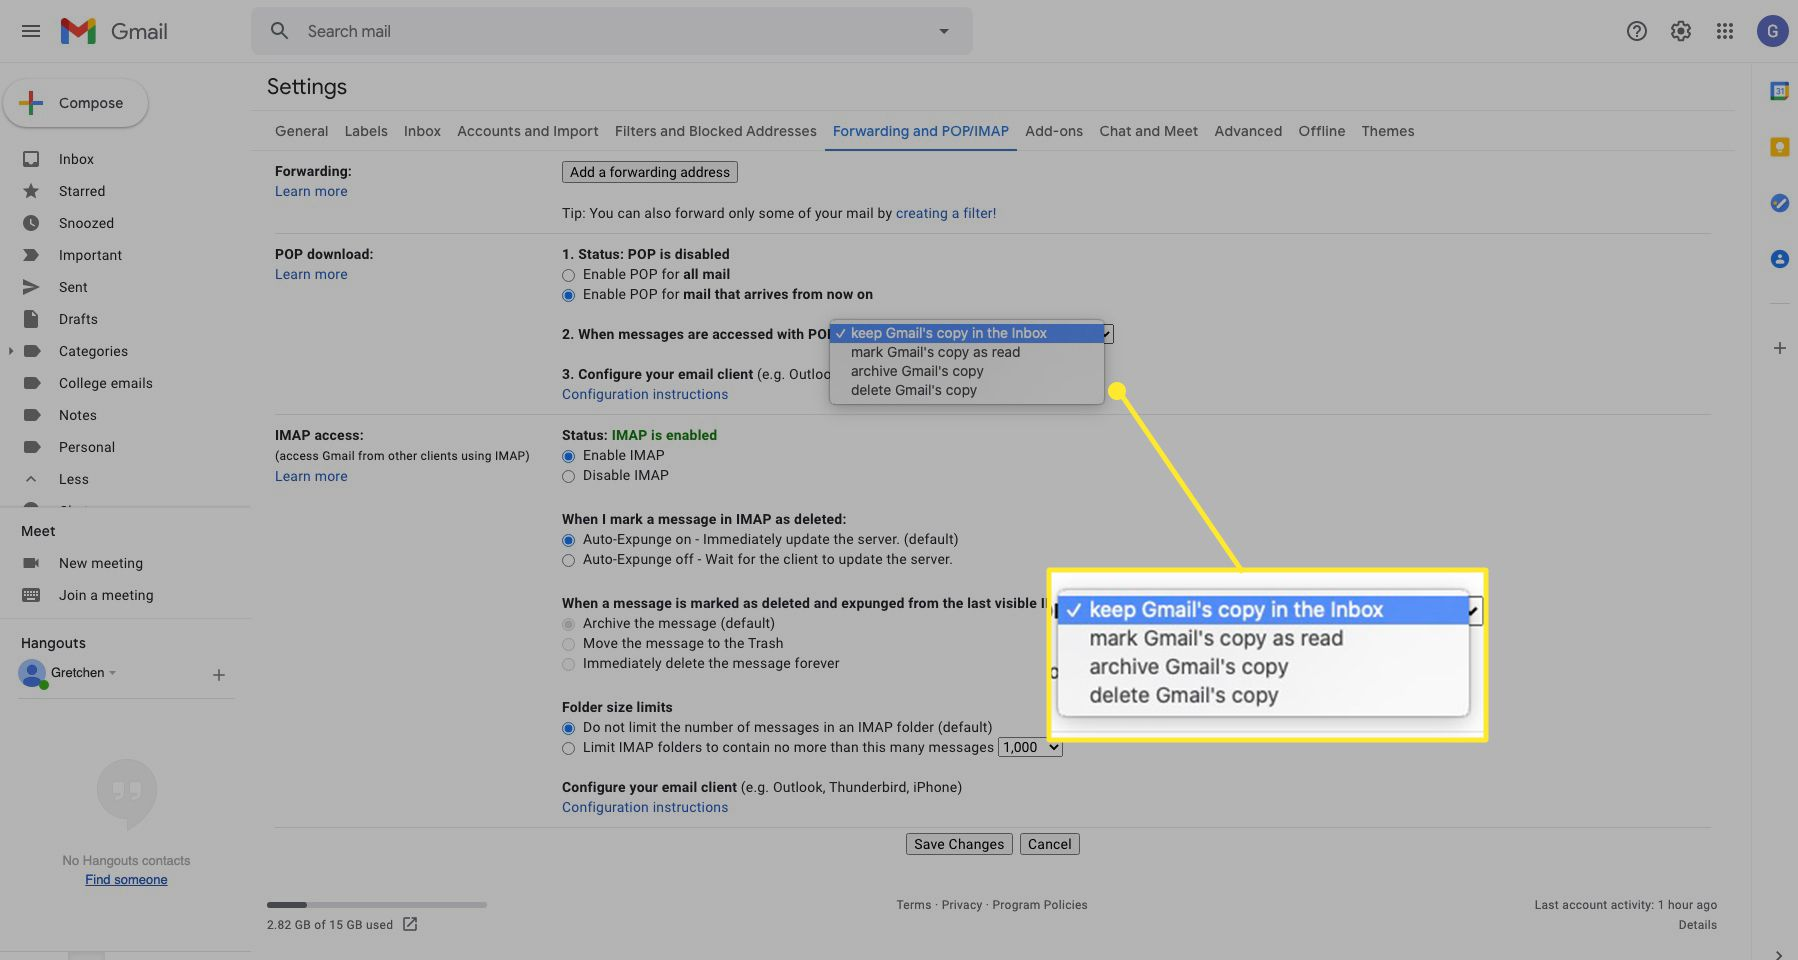 Gmail settings with mail options highlighted